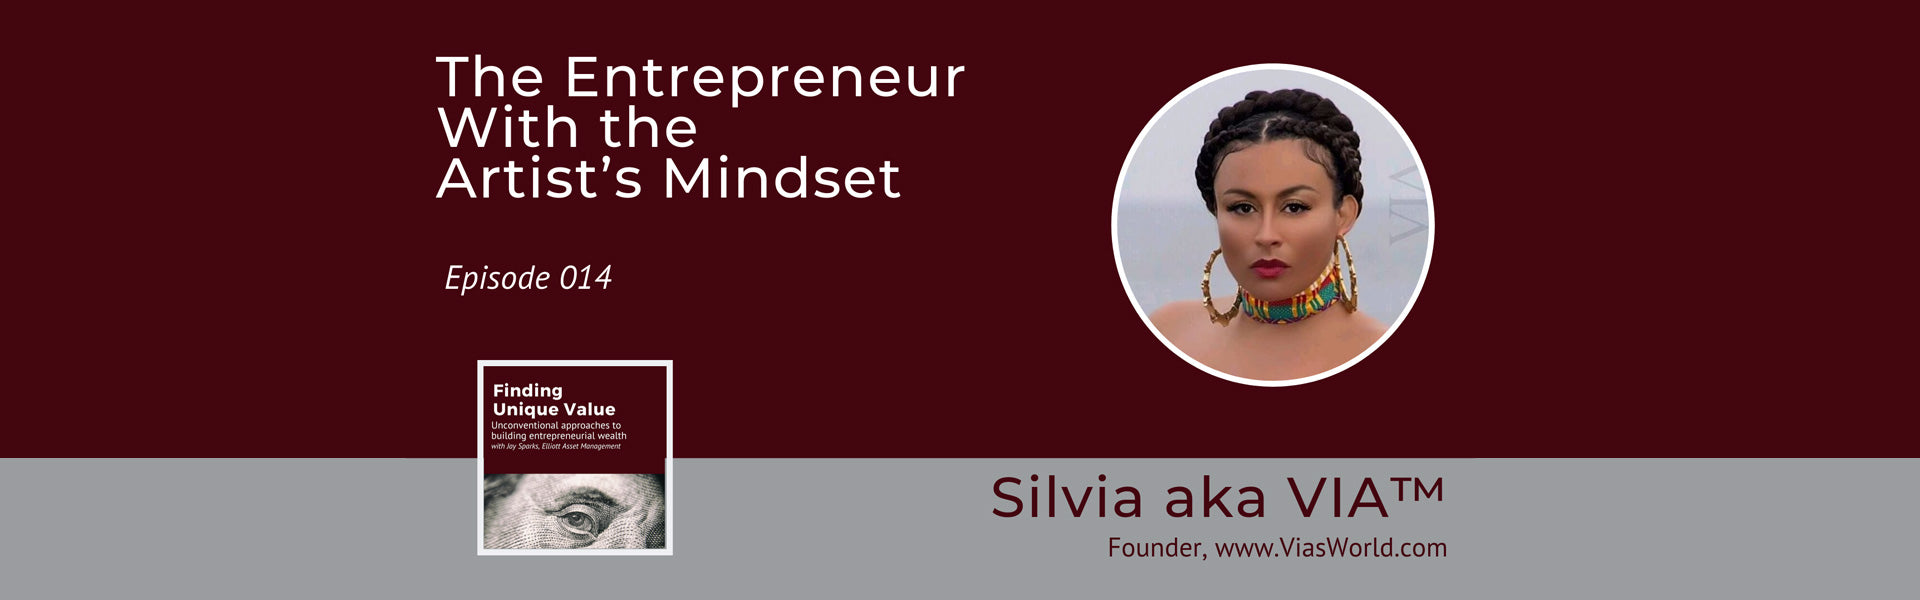 The Entrepreneur With the Artist's Mindset